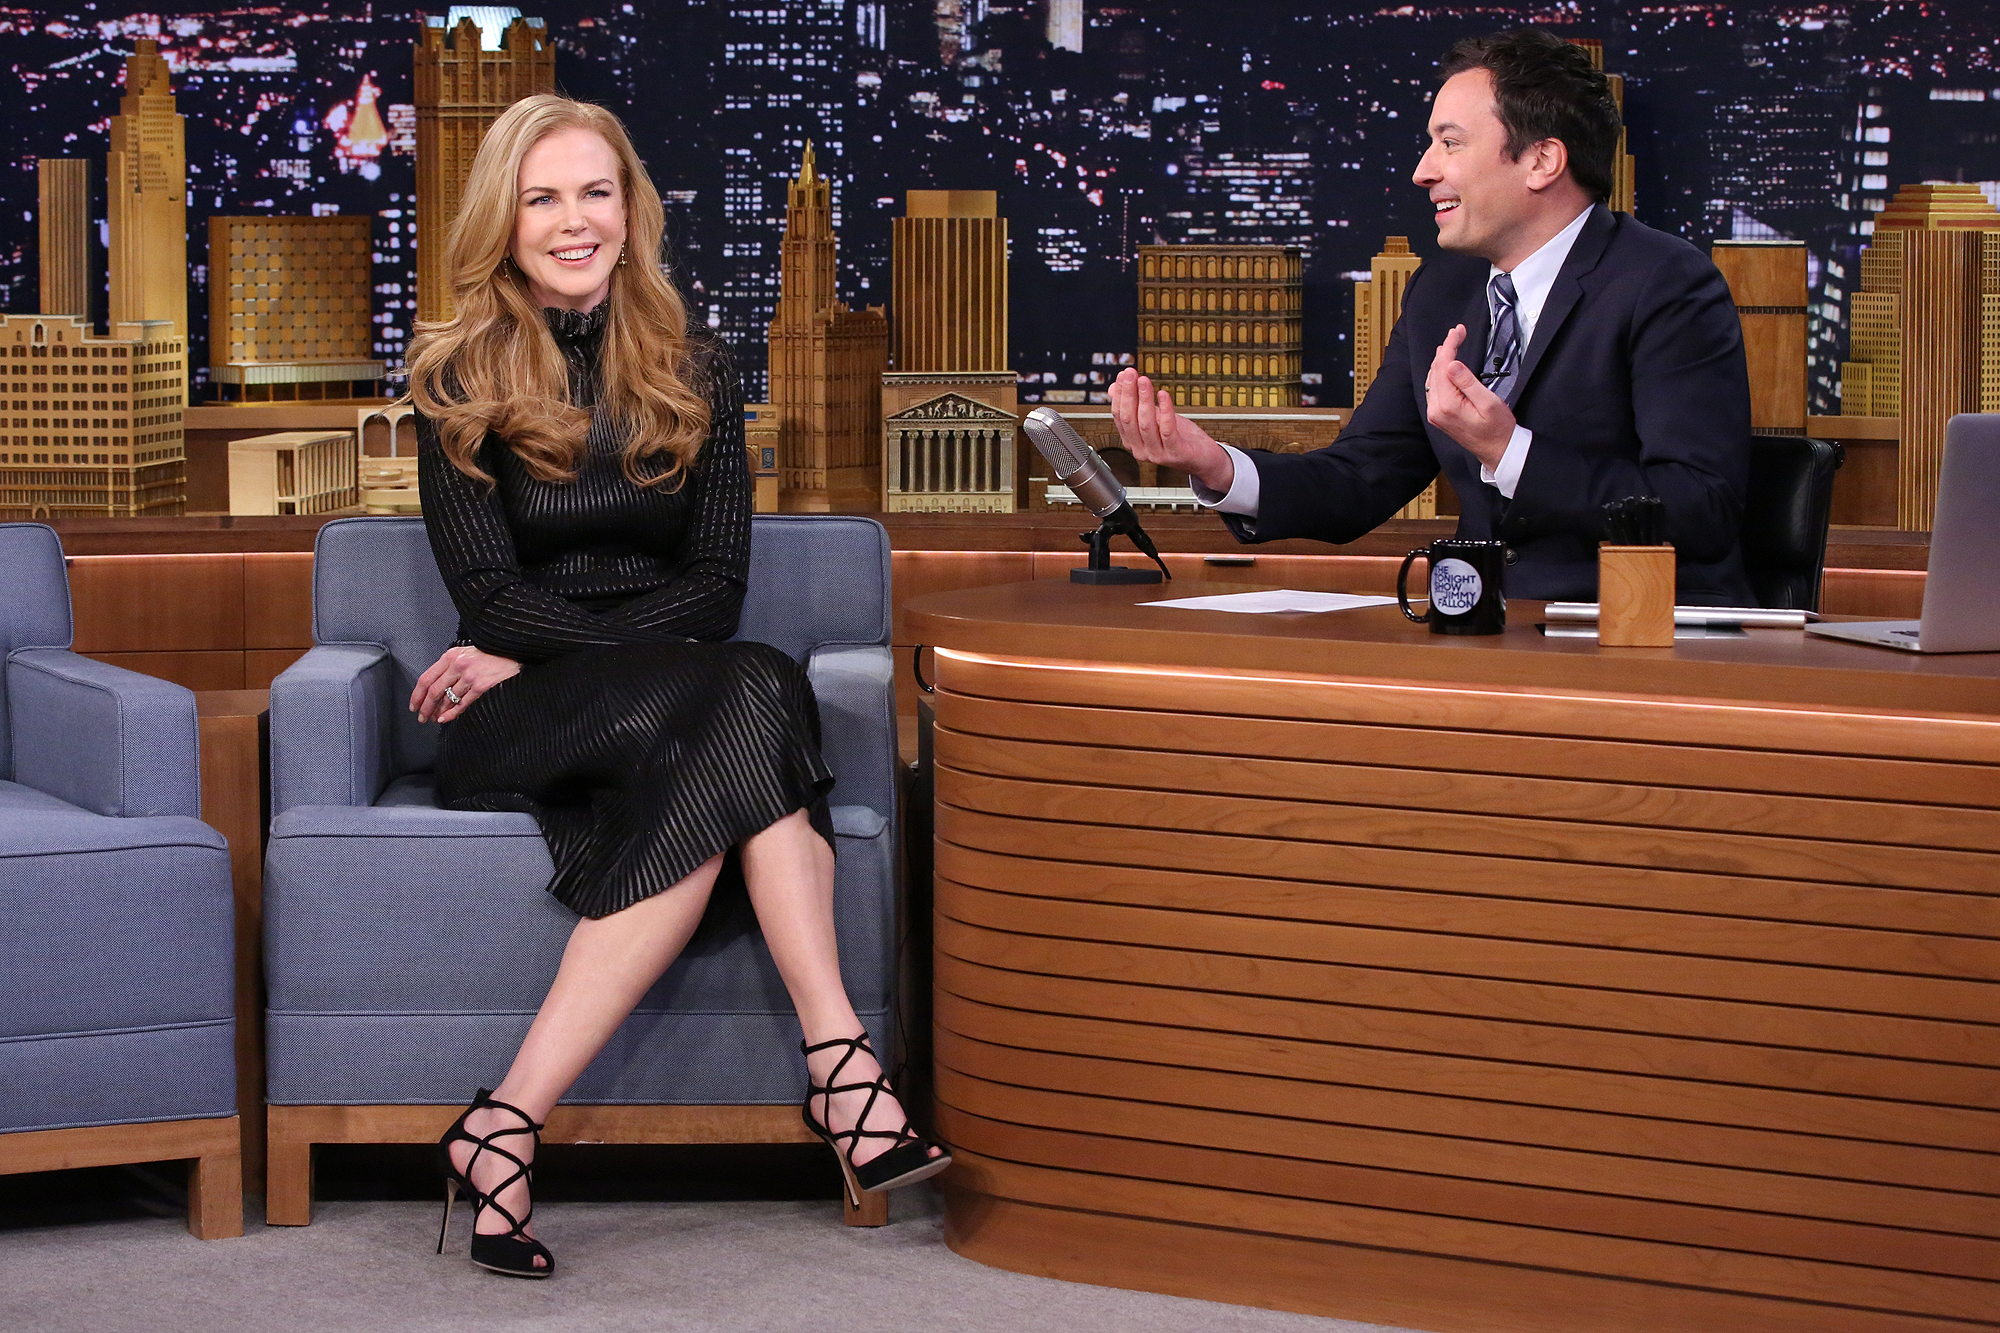 WHEN NICOLE KIDMAN DIDN'T TELL JIMMY FALLON THEY WERE ON A DATE